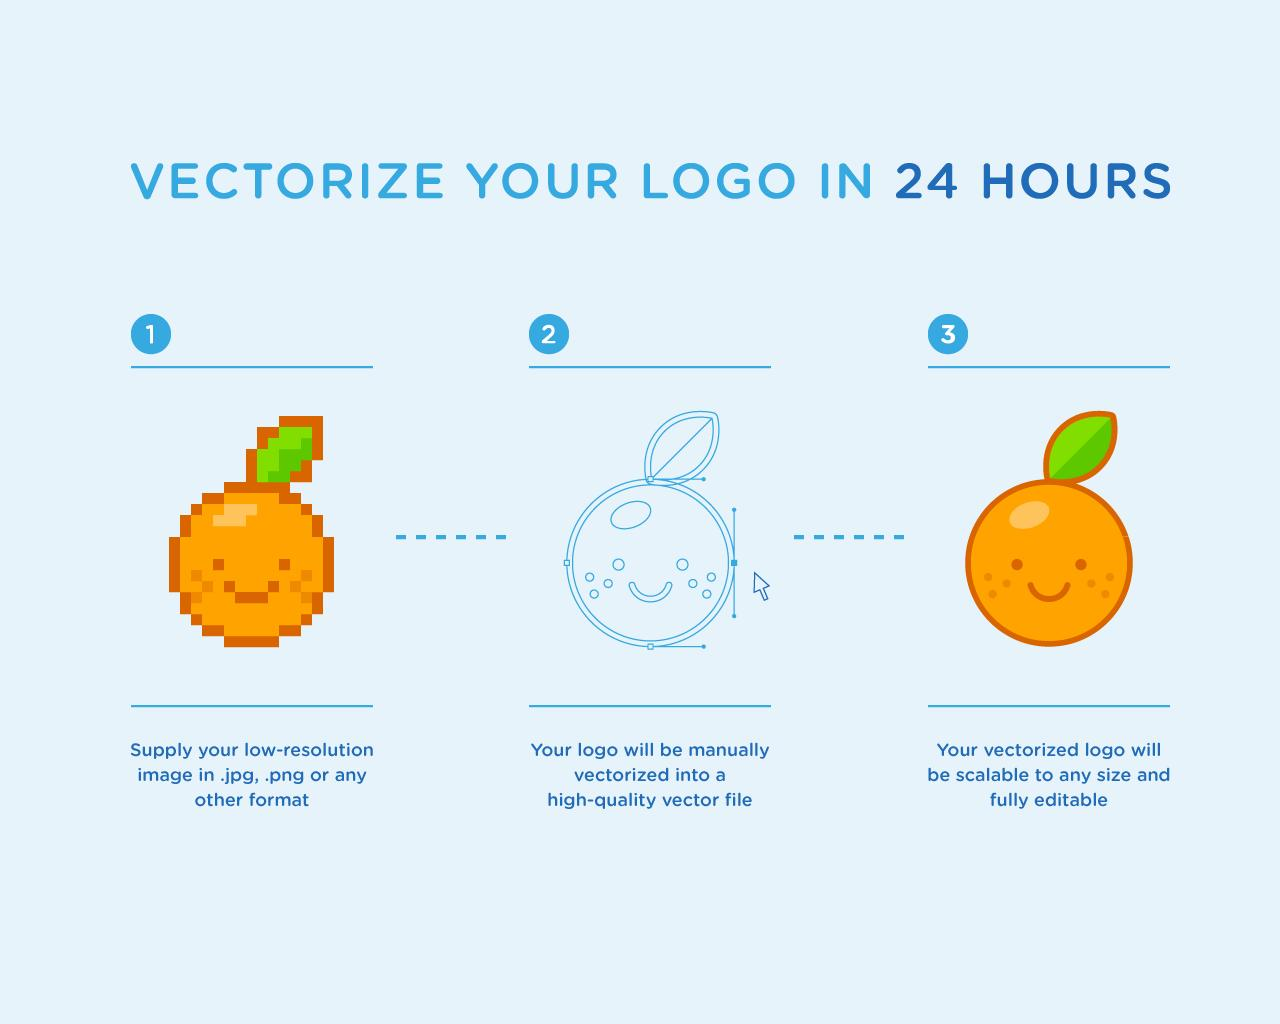 Vectorize Your Logo In 6 To 24 Hours by eightbit - 65607